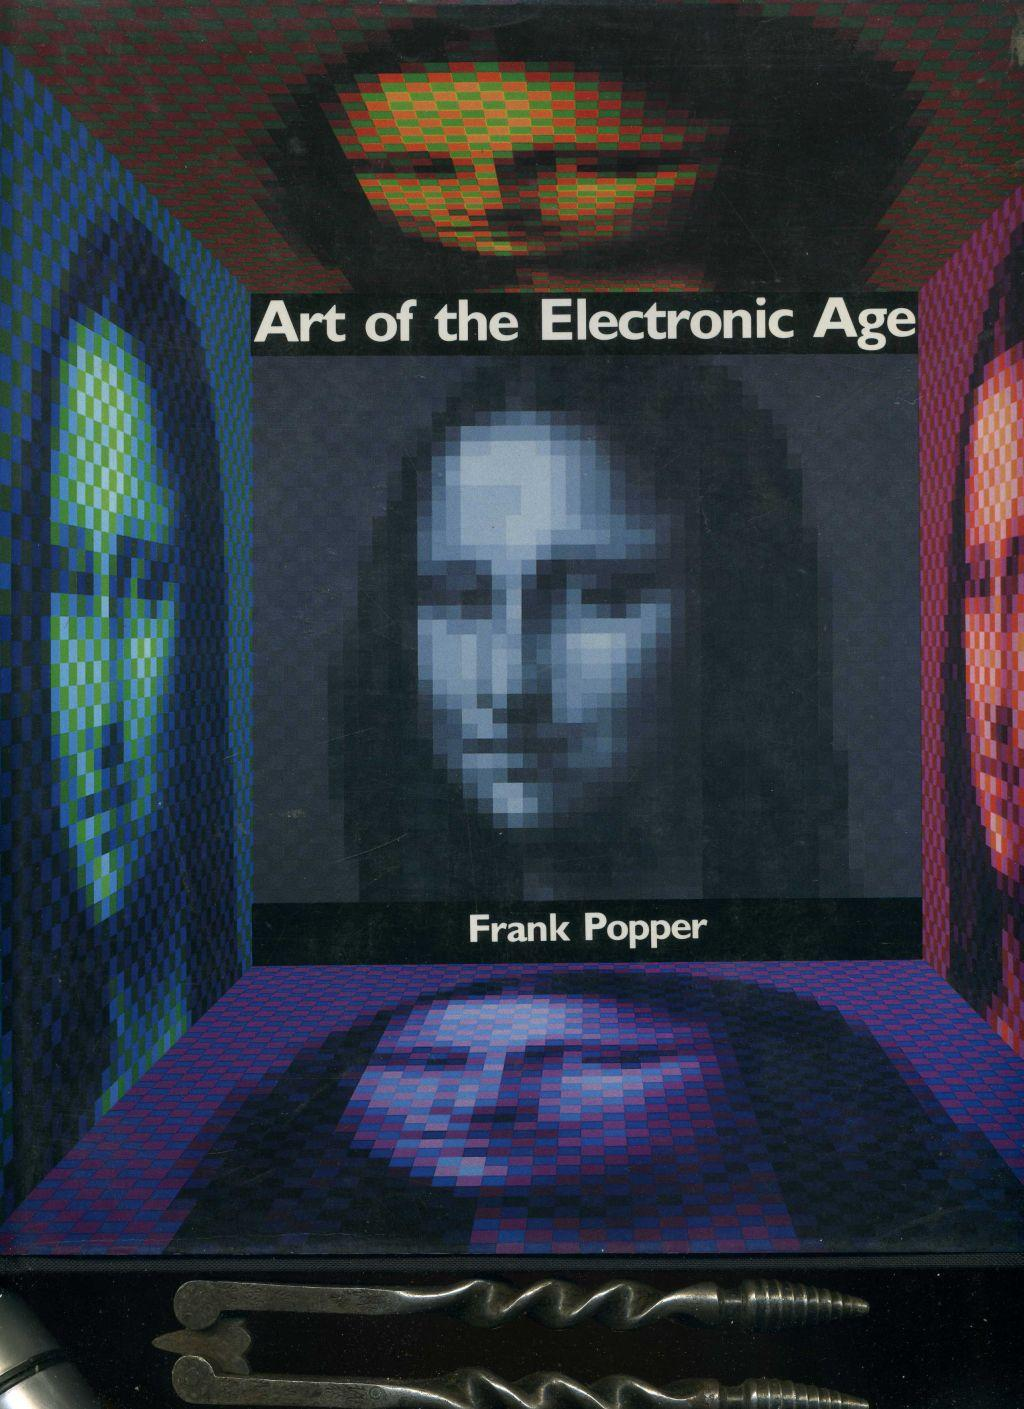 Art of the Electronic Age. 081091928: Frank Popper /